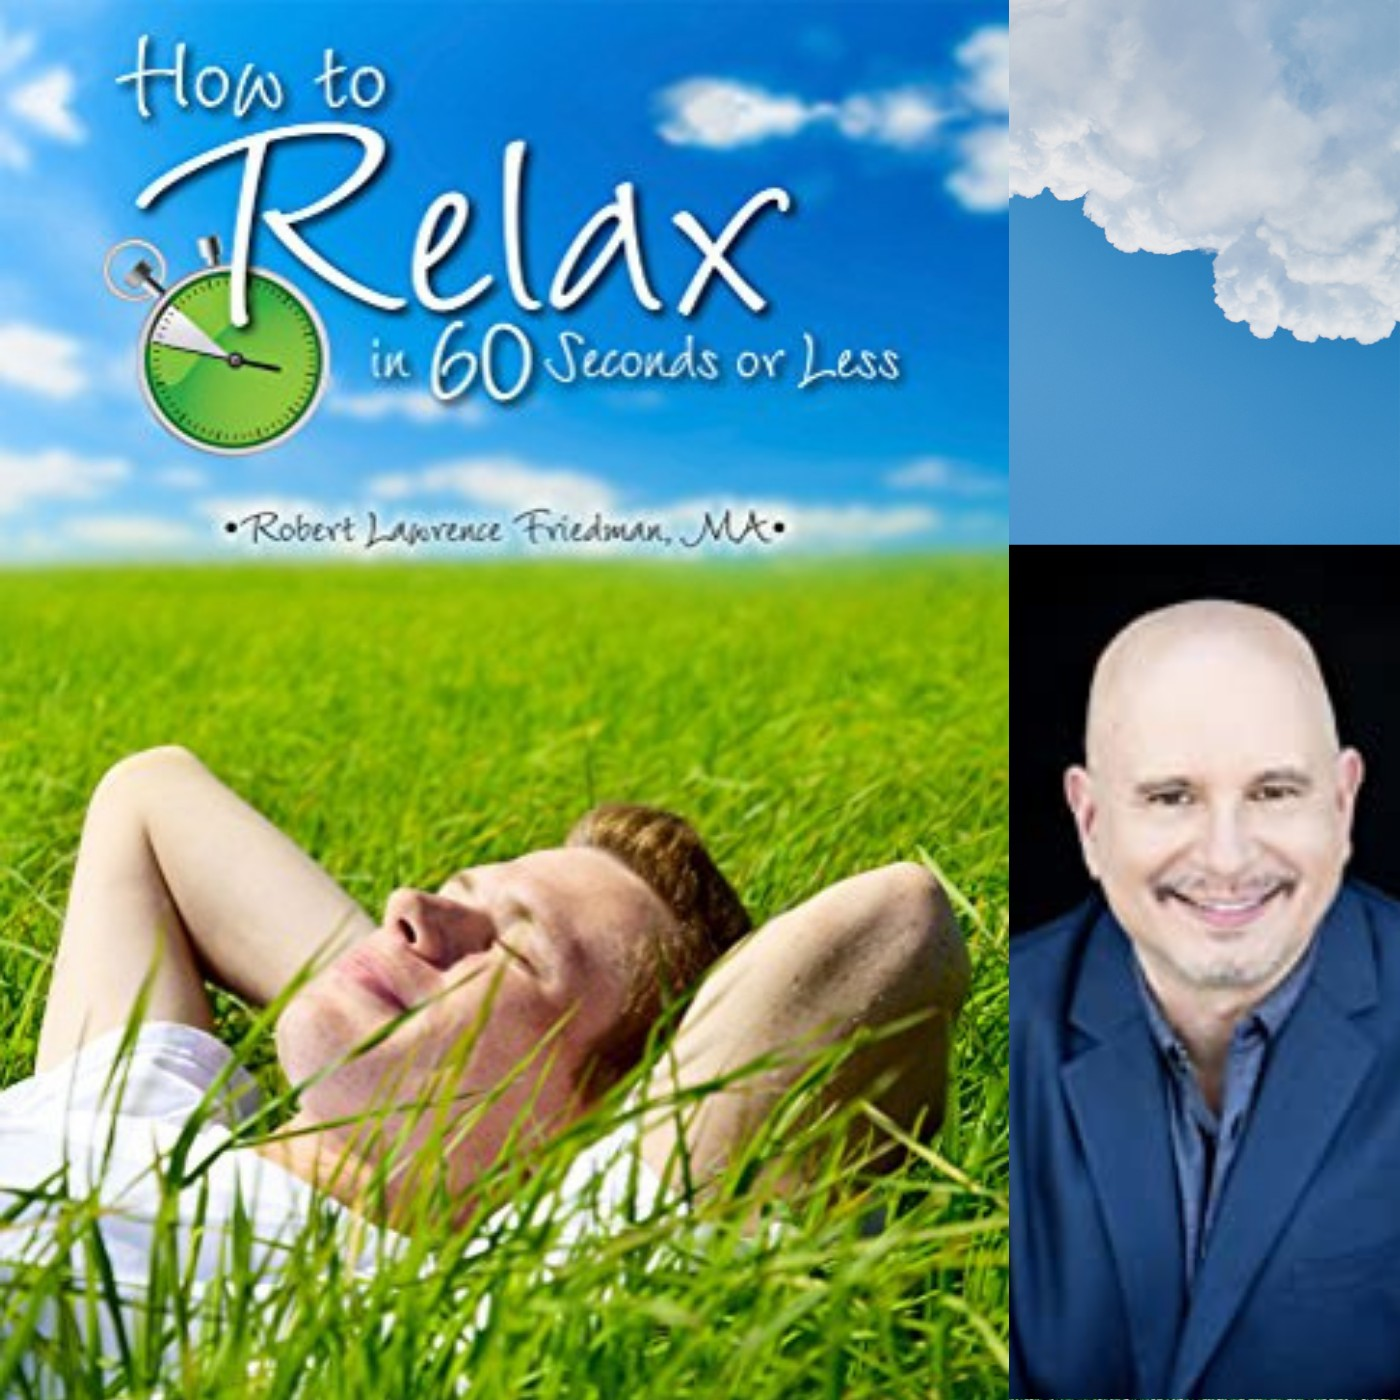 Relax with Robert Lawrence Friedman